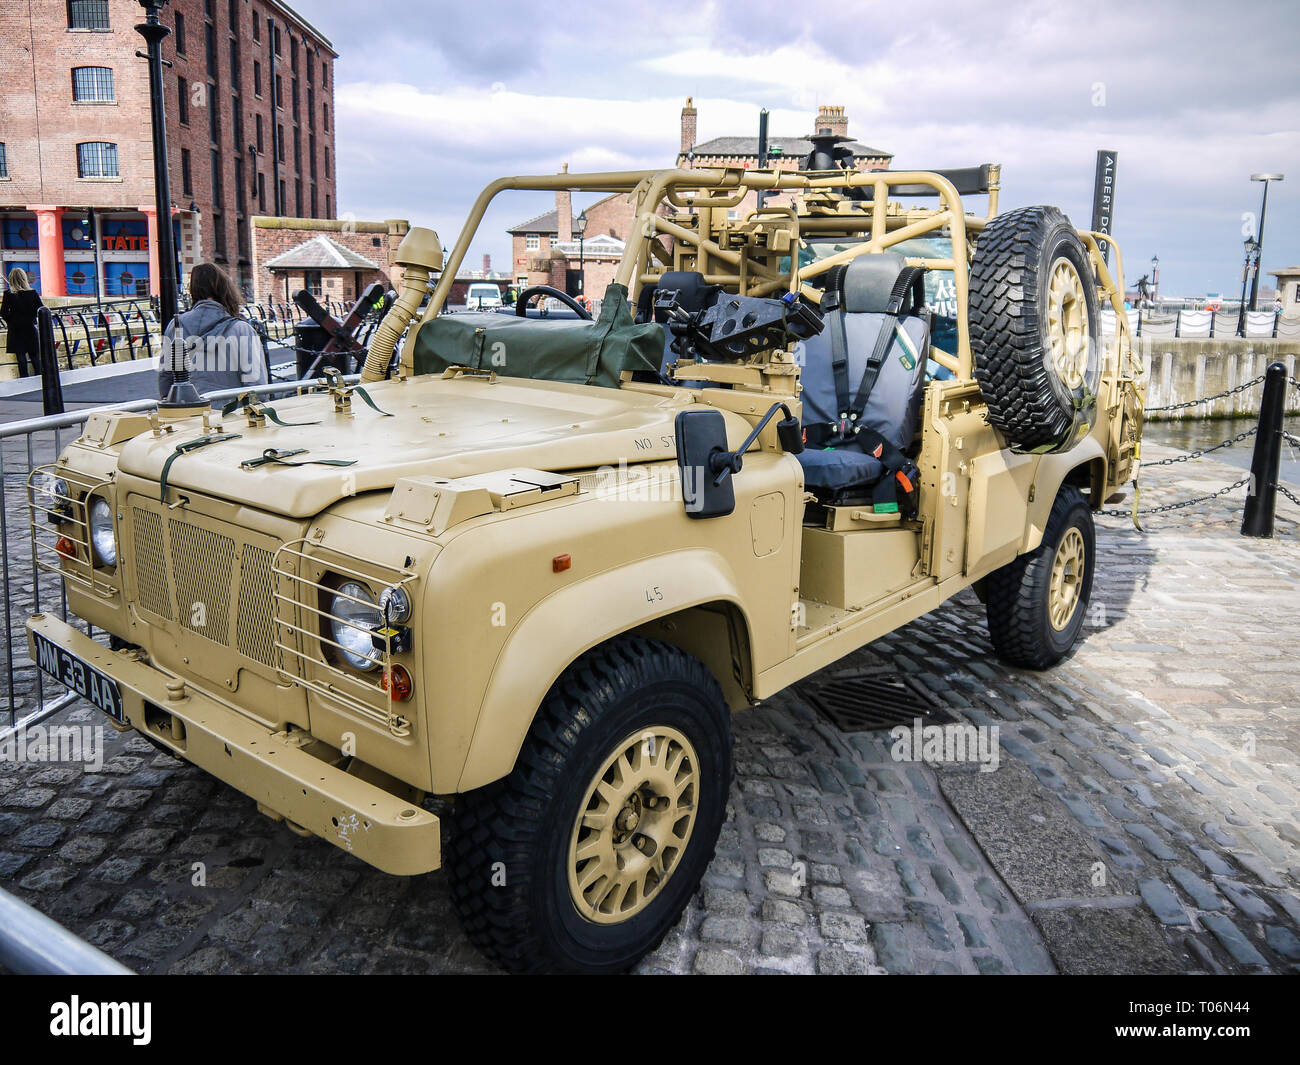 Military desert Land Rover Defender, British Army - Stock Image